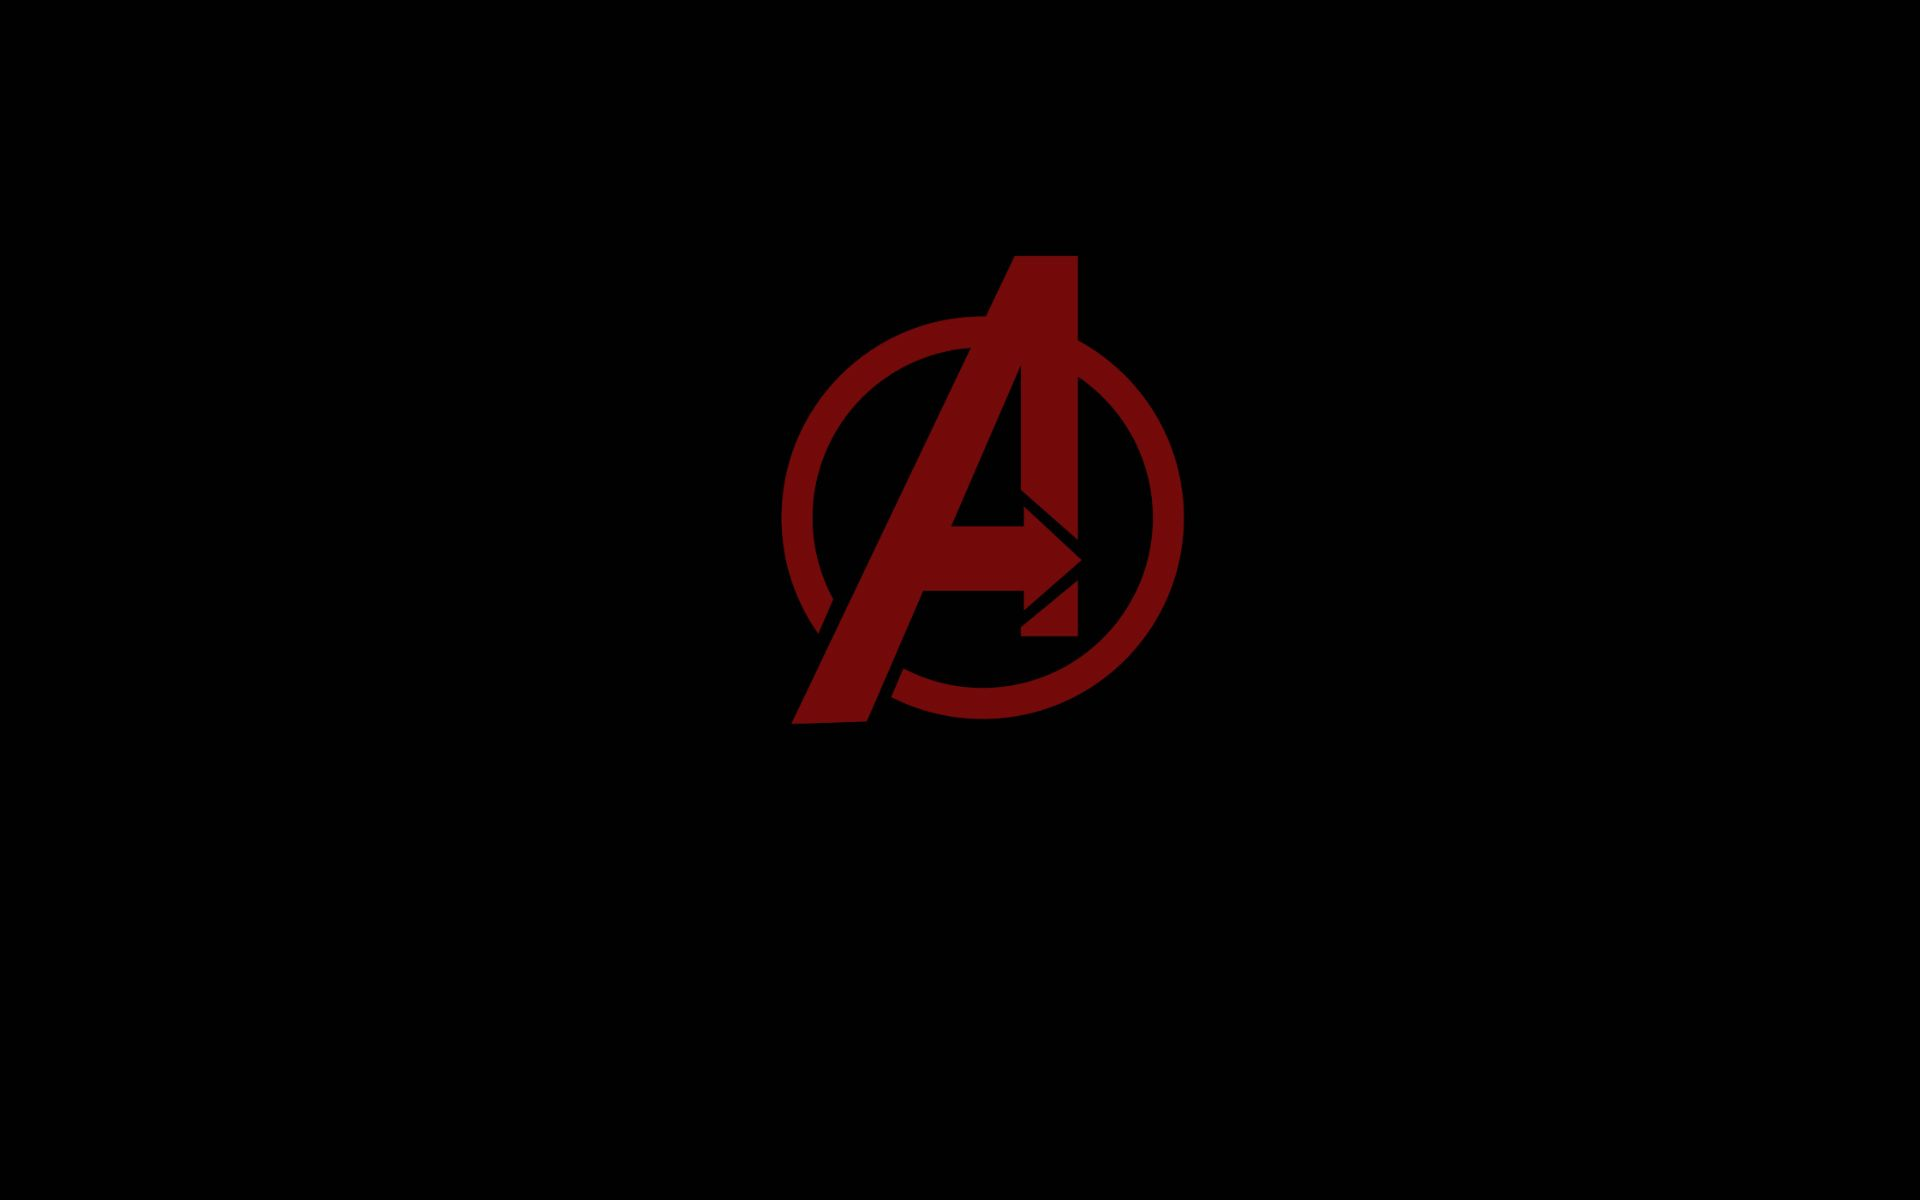 Marvel Avengers Logo Wallpapers Top Free Marvel Avengers Logo